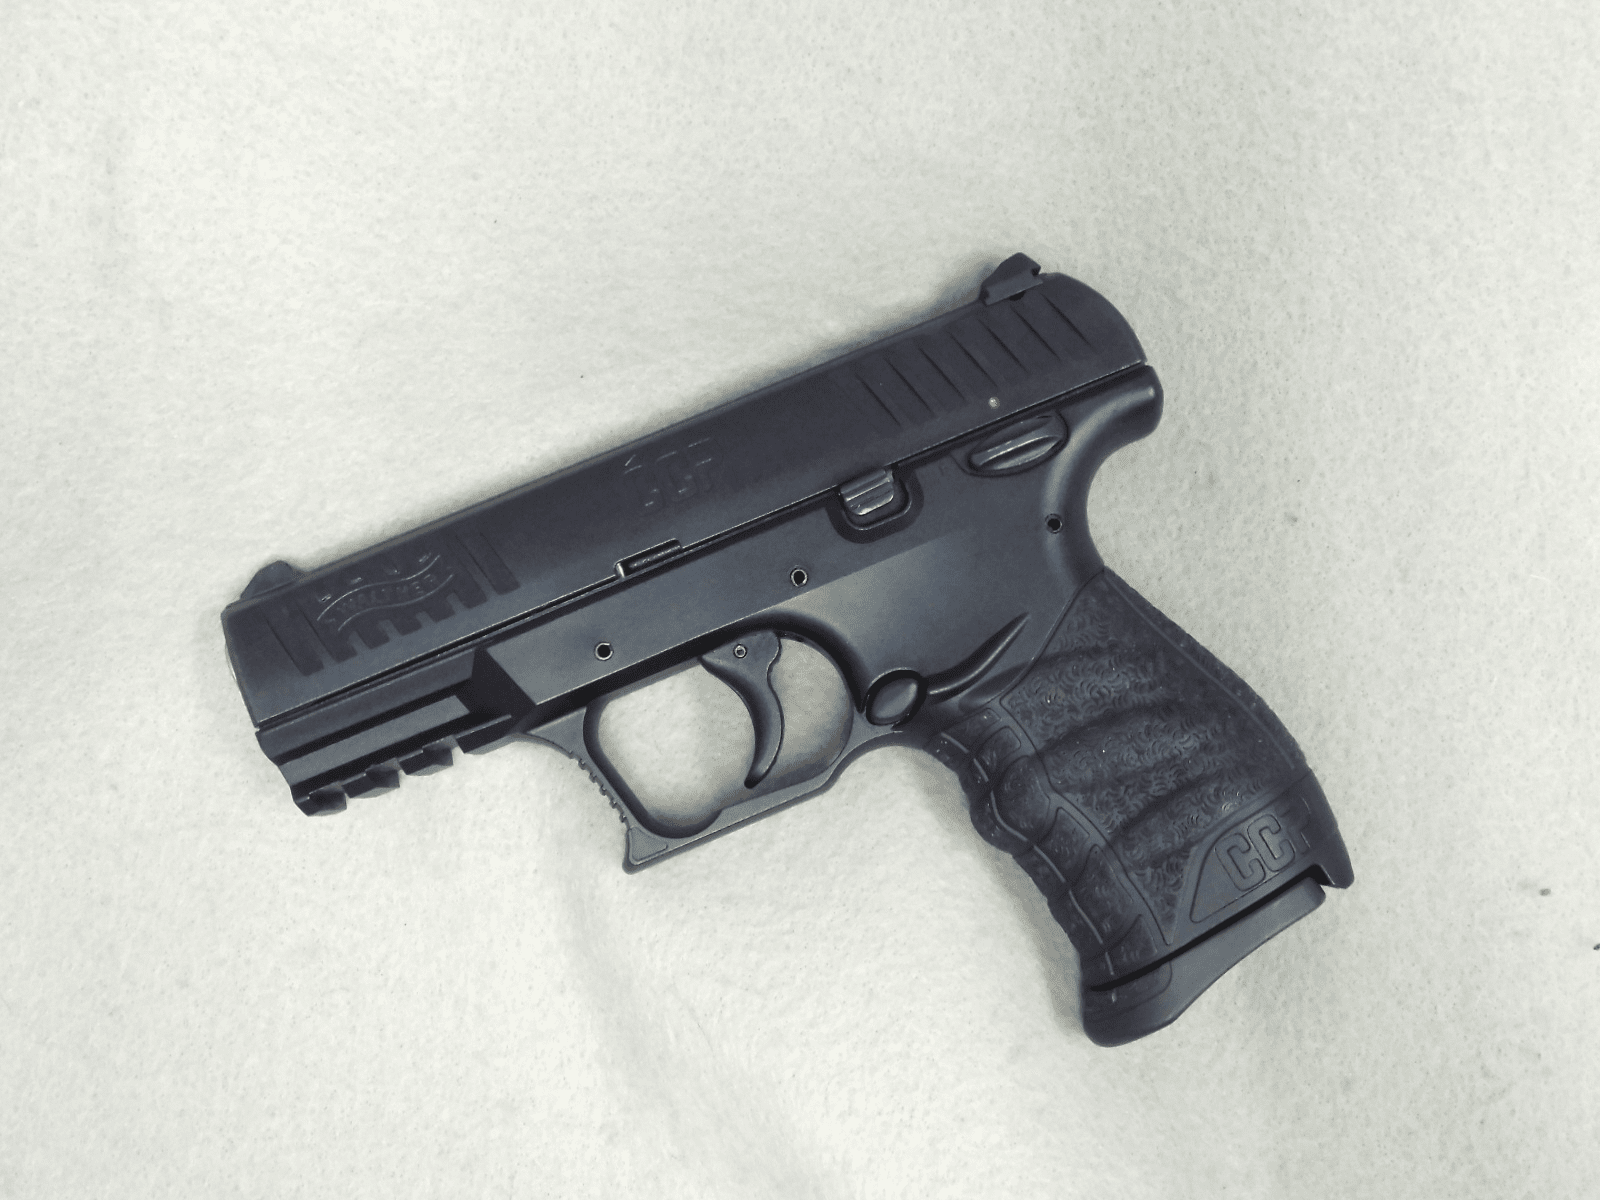 Walther CCP (9mm)